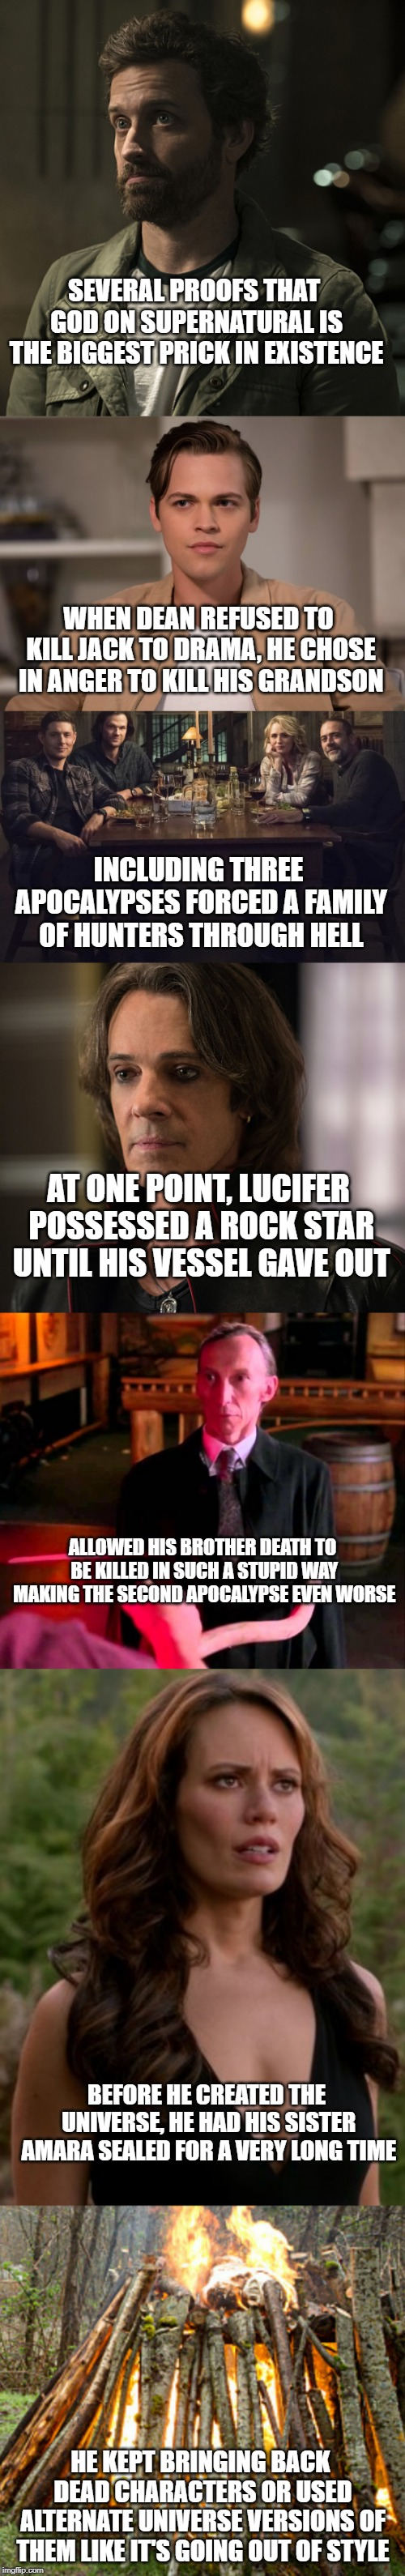 SEVERAL PROOFS THAT GOD ON SUPERNATURAL IS THE BIGGEST PRICK IN EXISTENCE HE KEPT BRINGING BACK DEAD CHARACTERS OR USED ALTERNATE UNIVERSE V | image tagged in supernatural,god,death,brother,sister,rockstar | made w/ Imgflip meme maker